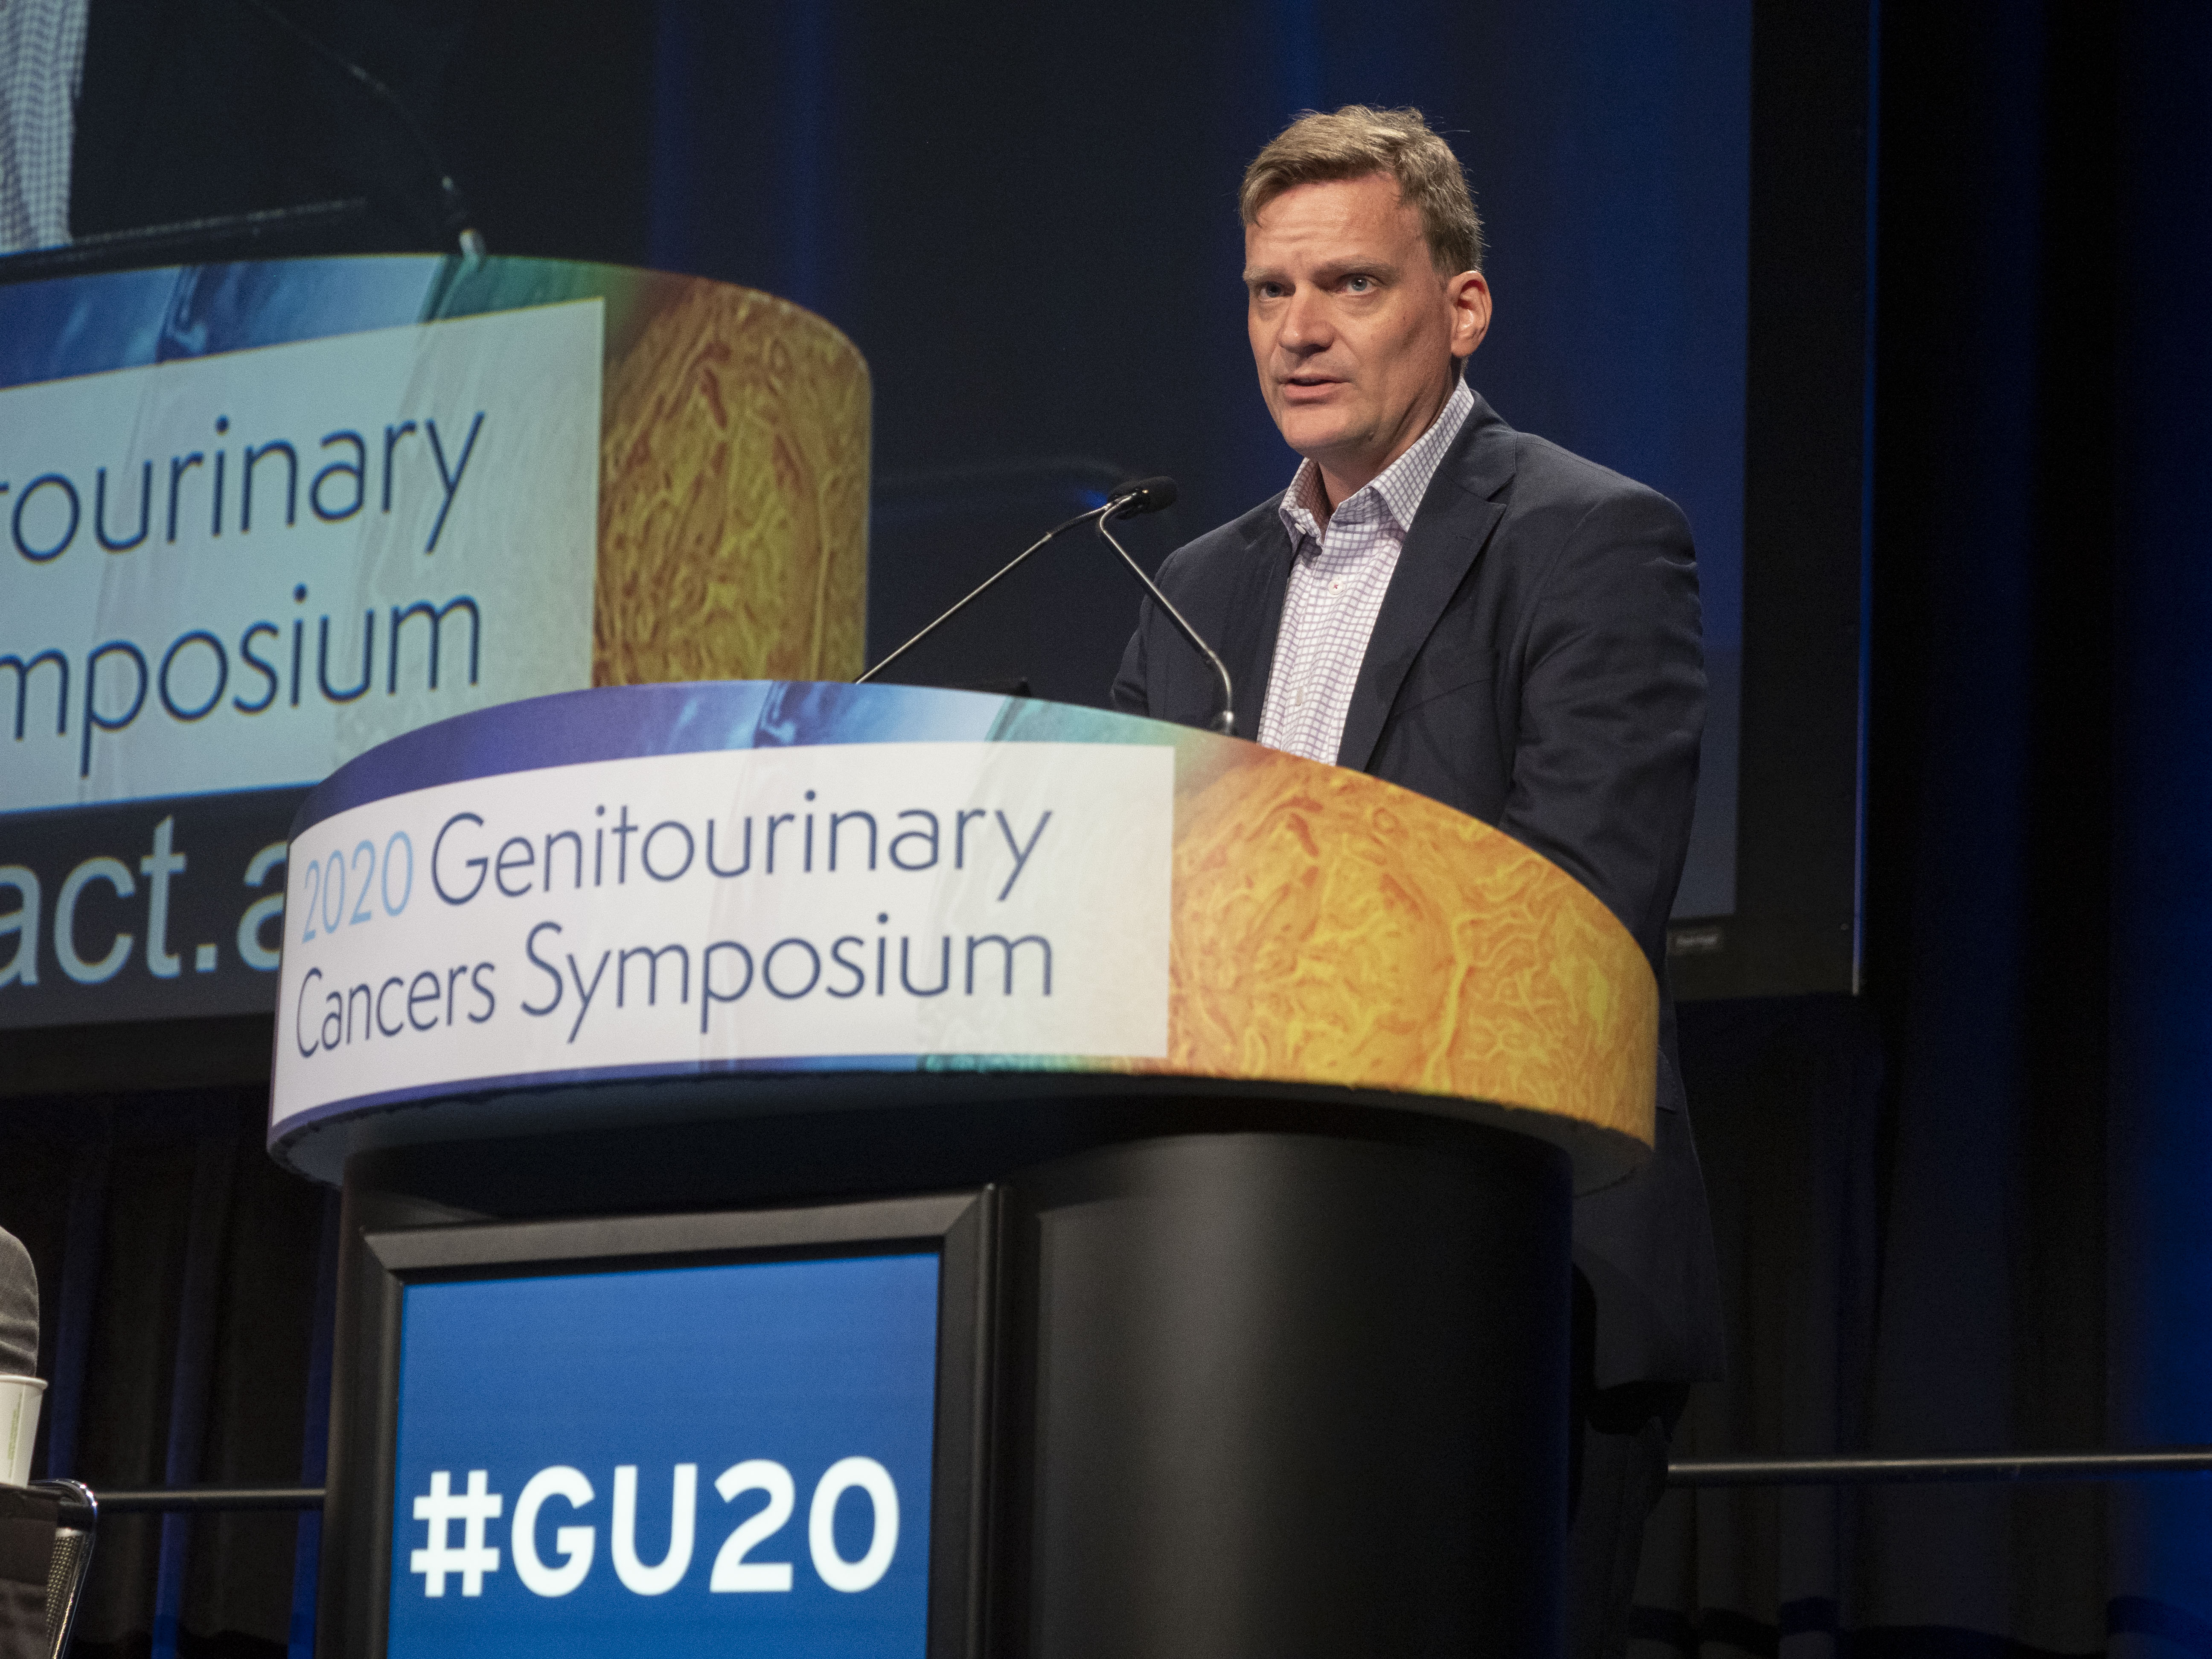 San Francisco, CA - 2020 Genitourinary Cancers Symposium – Hans J. Hammers, MD, PhD, presents Abstract 614 during Oral Abstract Session C: Renal Cell Cancer at the 2020 Genitourinary Cancers Symposium here today, Saturday February 15, 2020. Photo by © ASCO/Todd Buchanan 2020